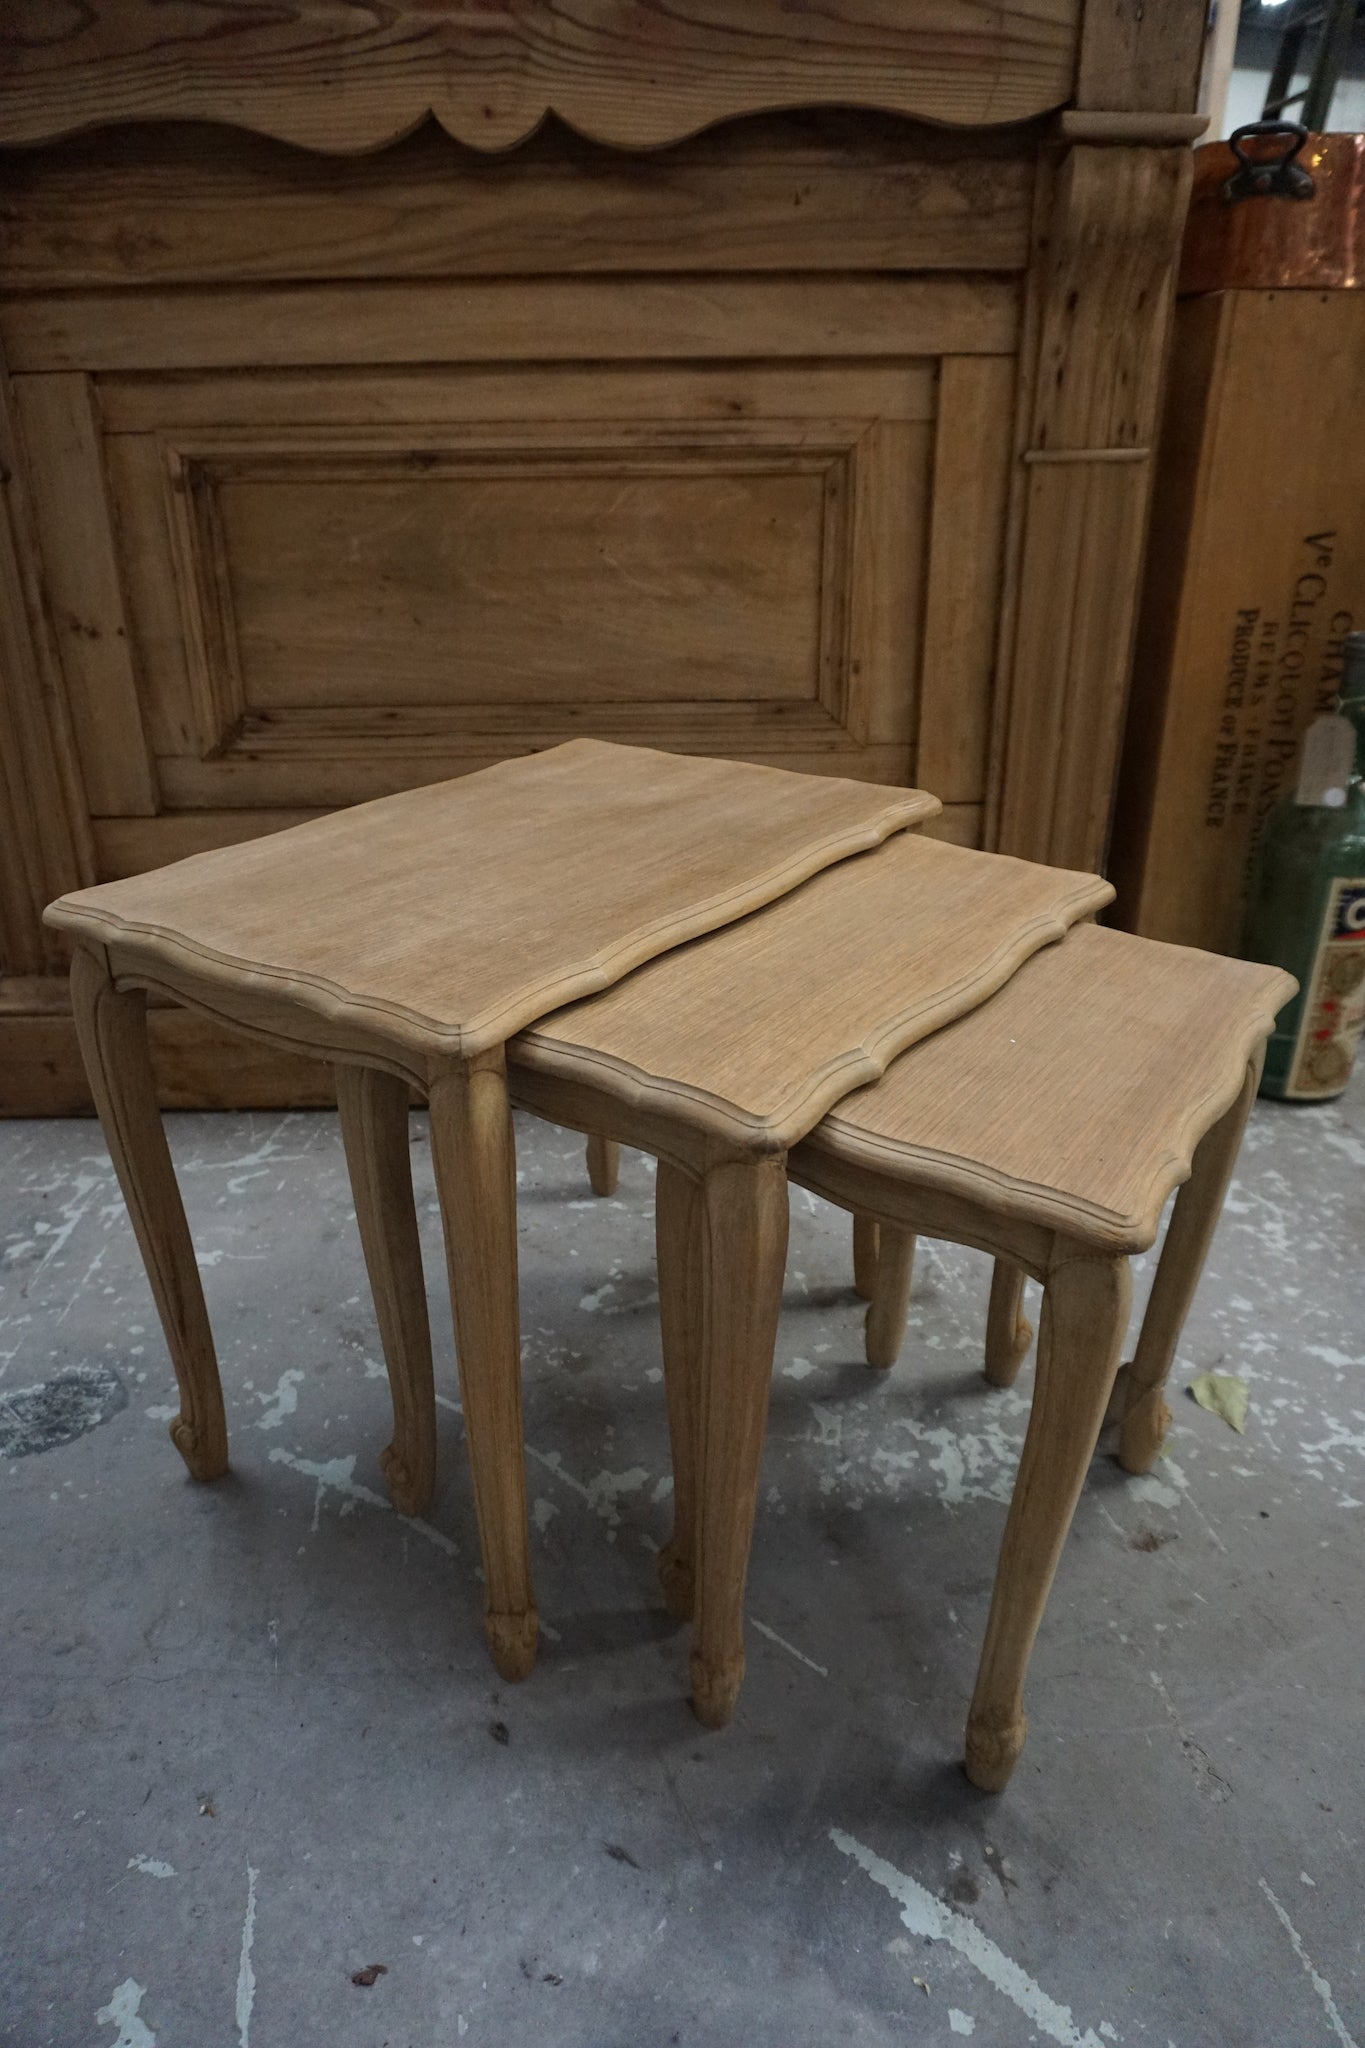 Antique French Nest of Tables - Set of 3